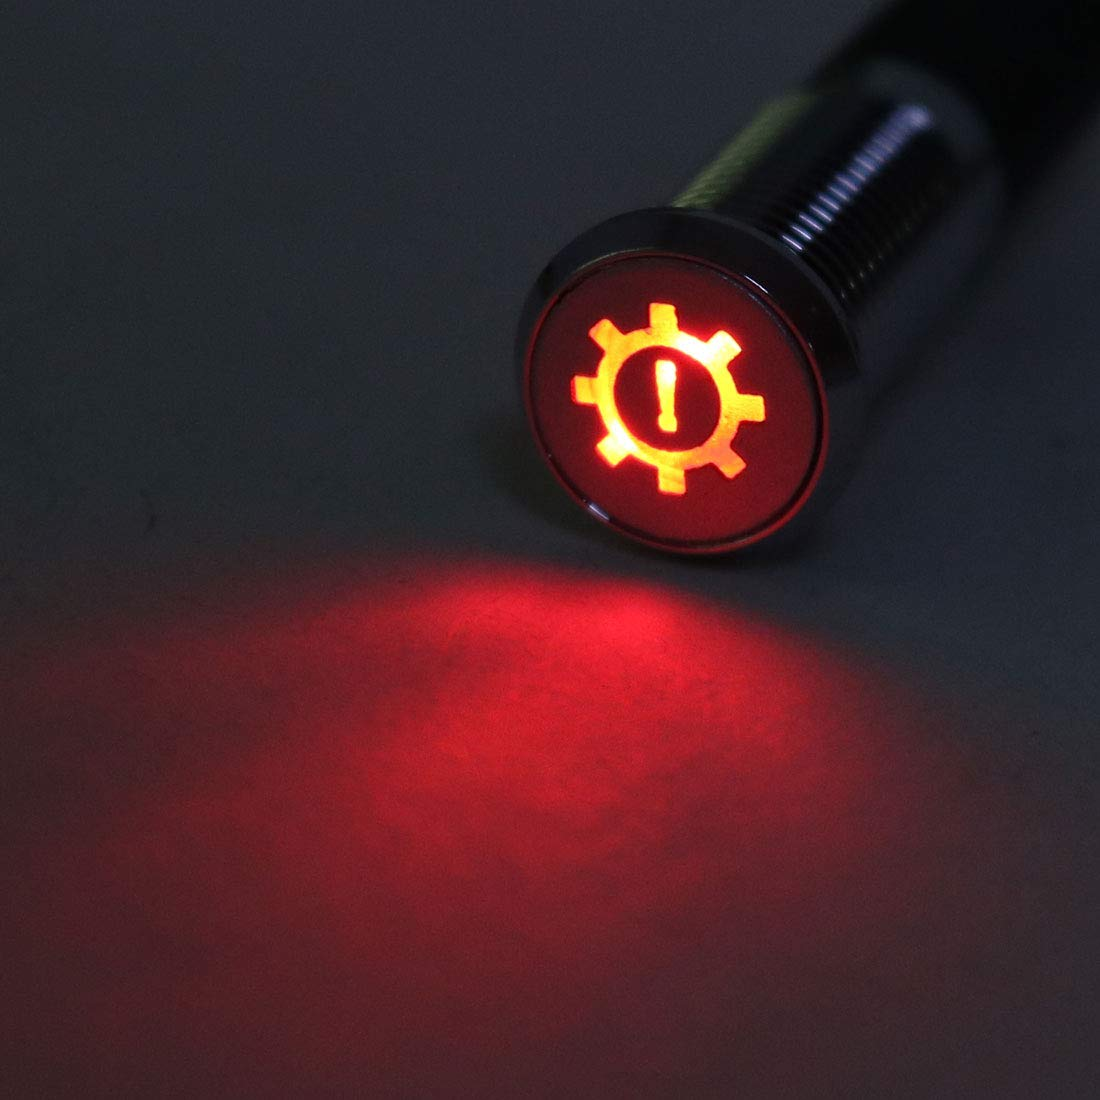 uxcell Signal Indicator Light DC 12V 8mm Red LED Metal Shell with Symbol Gearbox Failure